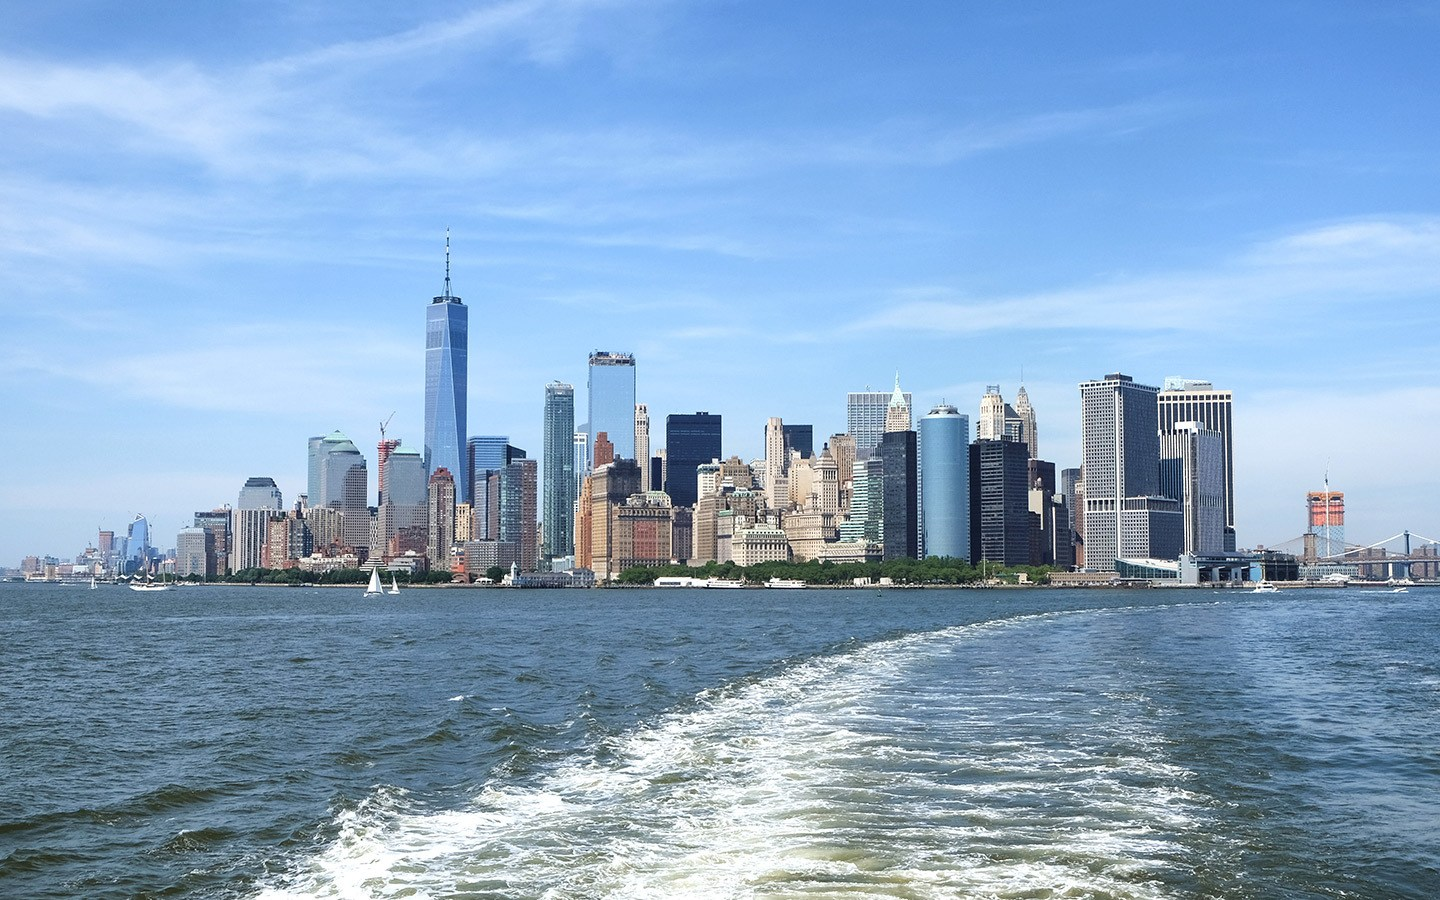 New York film locations: A city walking tour